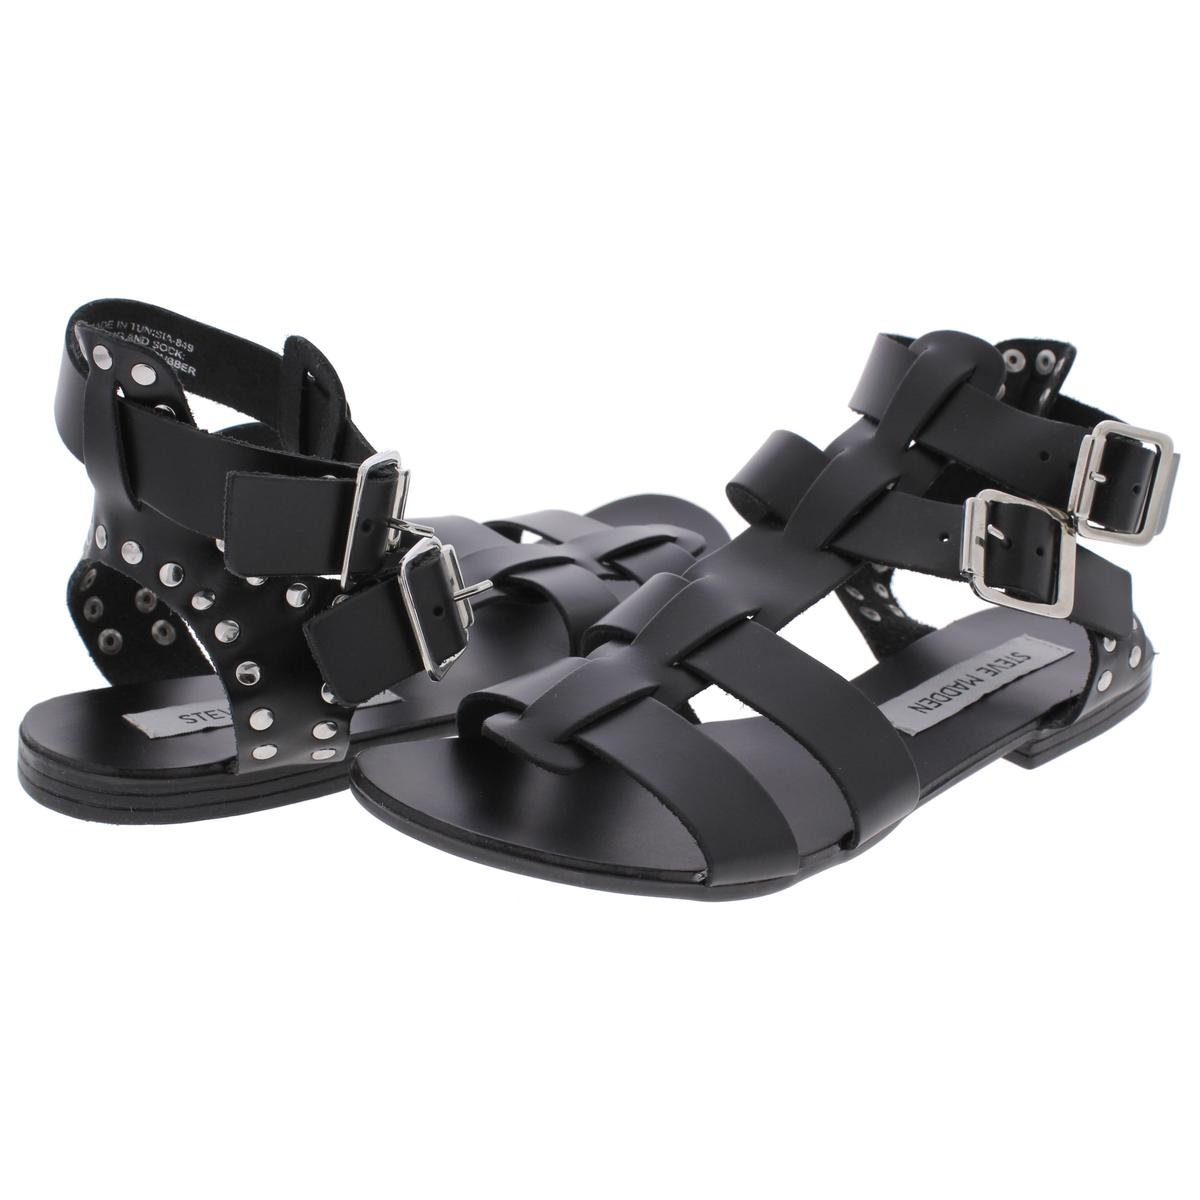 Steve-Madden-Womens-Lucy-Open-Toe-Studded-Strappy-Dress-Sandals-Shoes-BHFO-1682 thumbnail 7